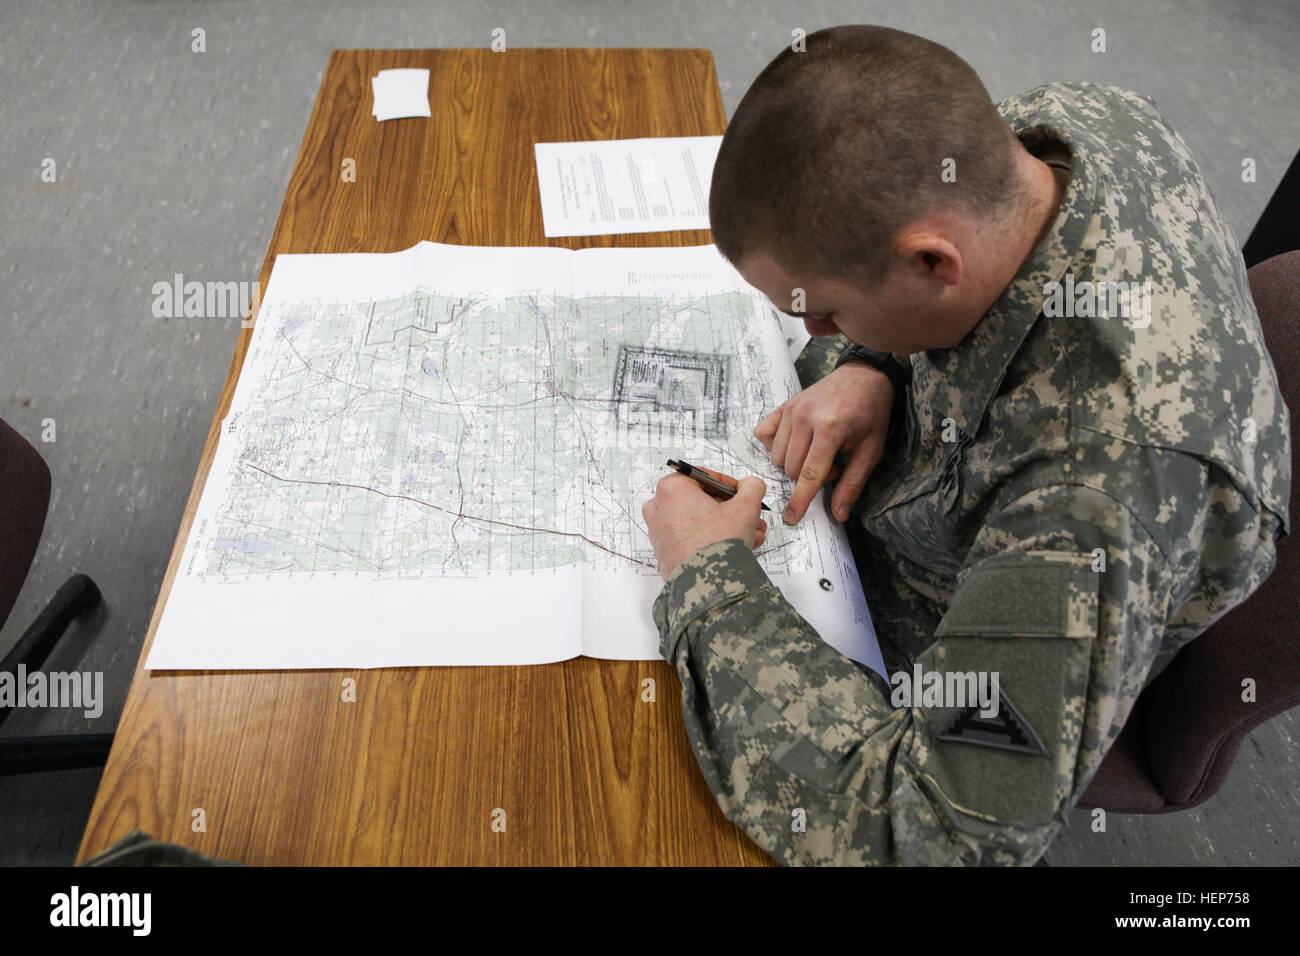 US Army Spc Matthew Morris Of Charlie Company St Battalion - Us army map reading